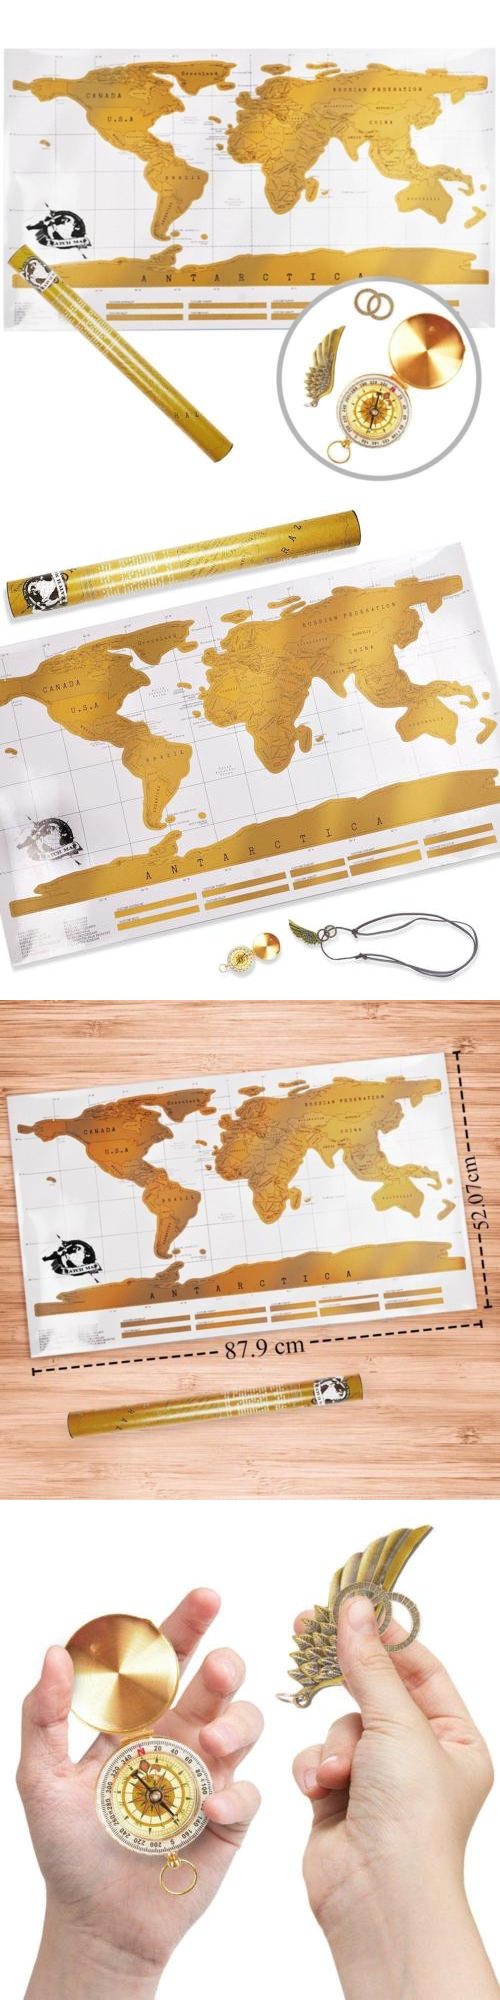 Other travel maps 164807 scratch off world map with a gold other travel maps 164807 scratch off world map with a gold compass best gift gumiabroncs Image collections